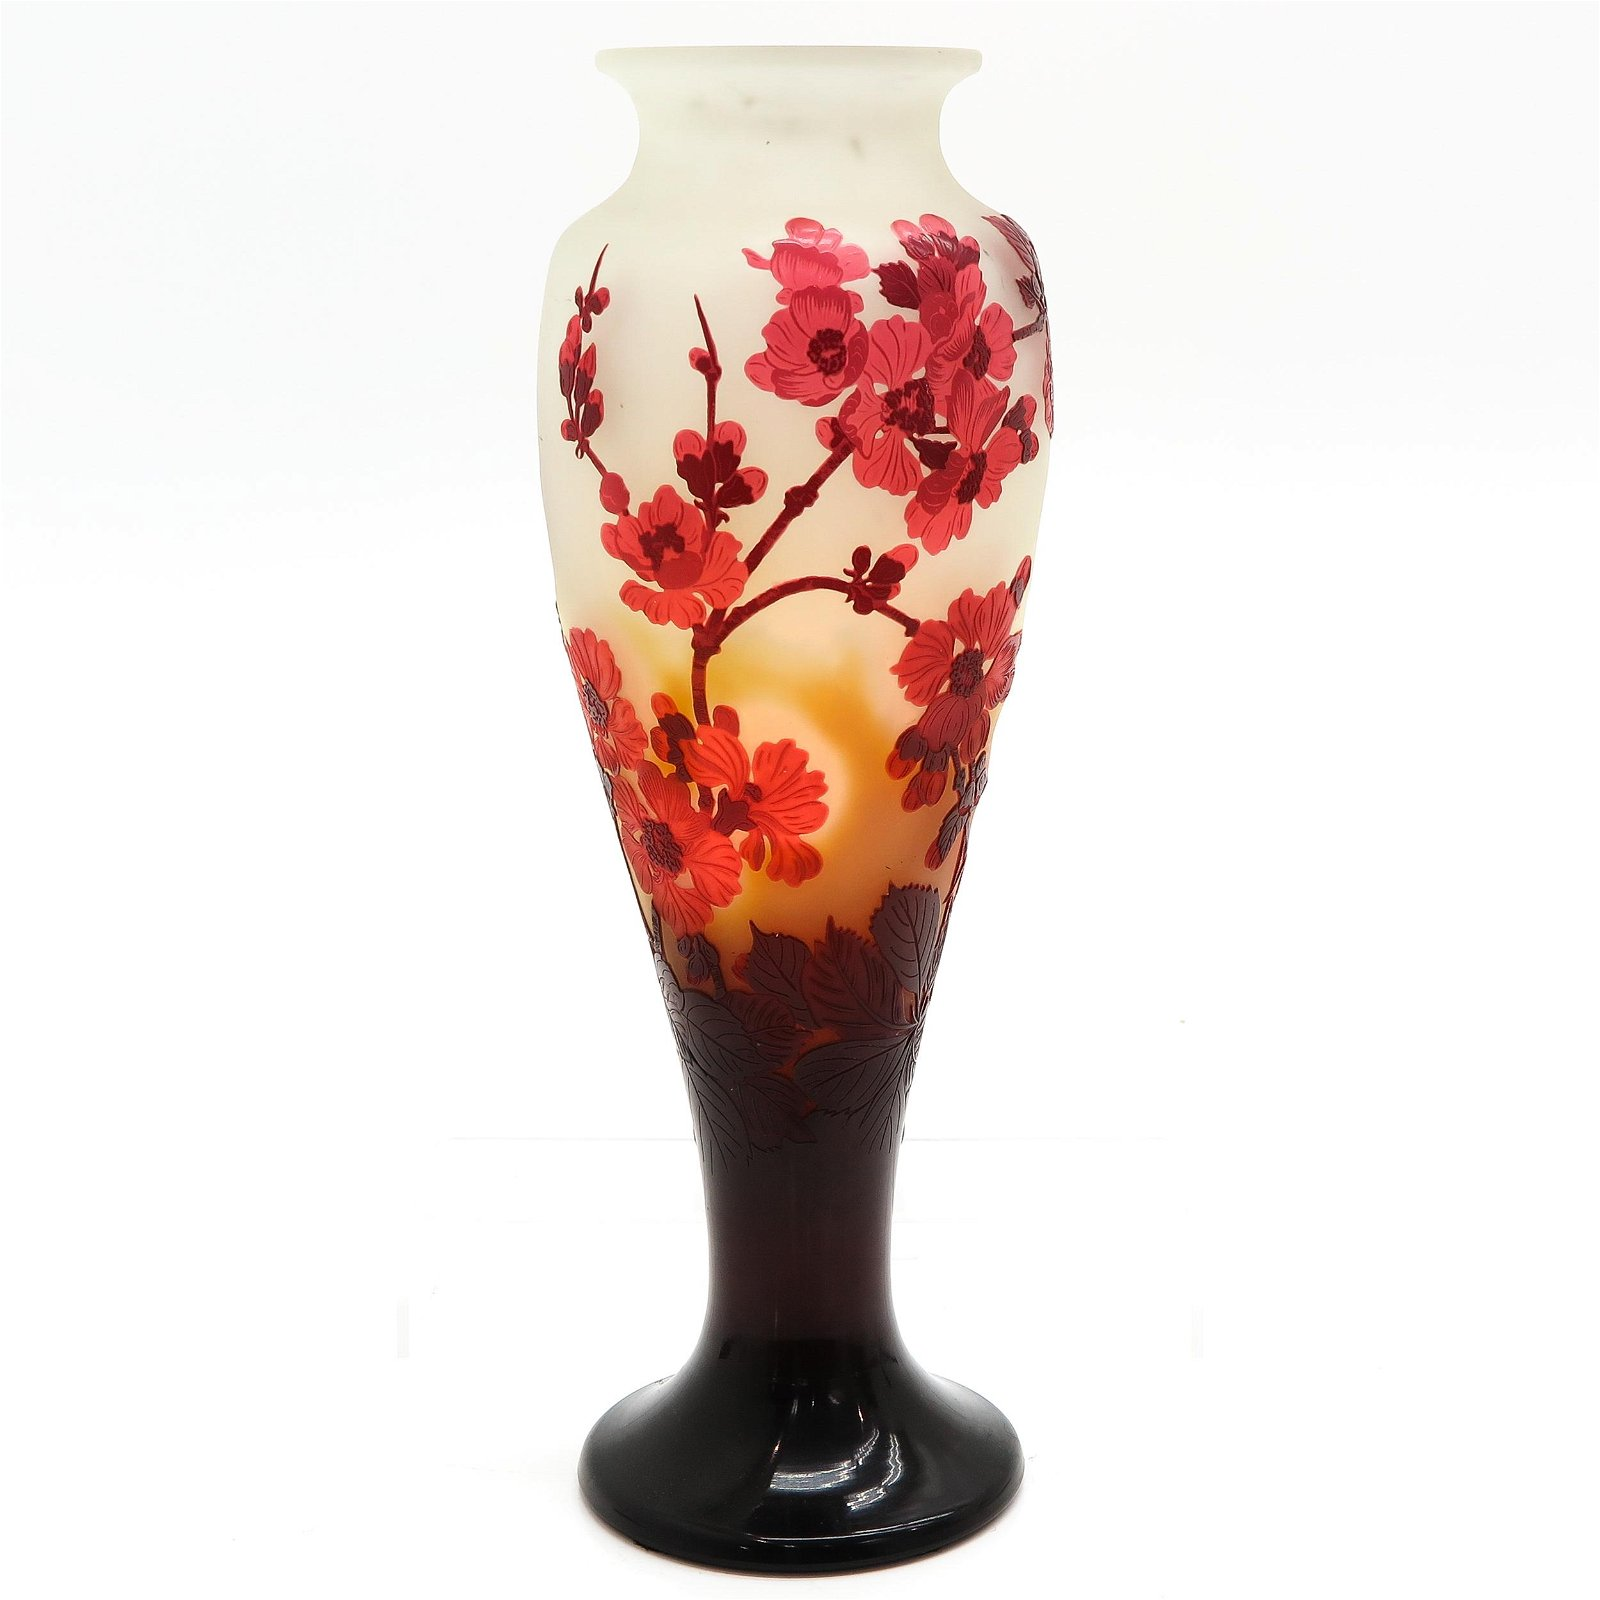 A Signed Galle Cameo Glass Vase with Original Invoice